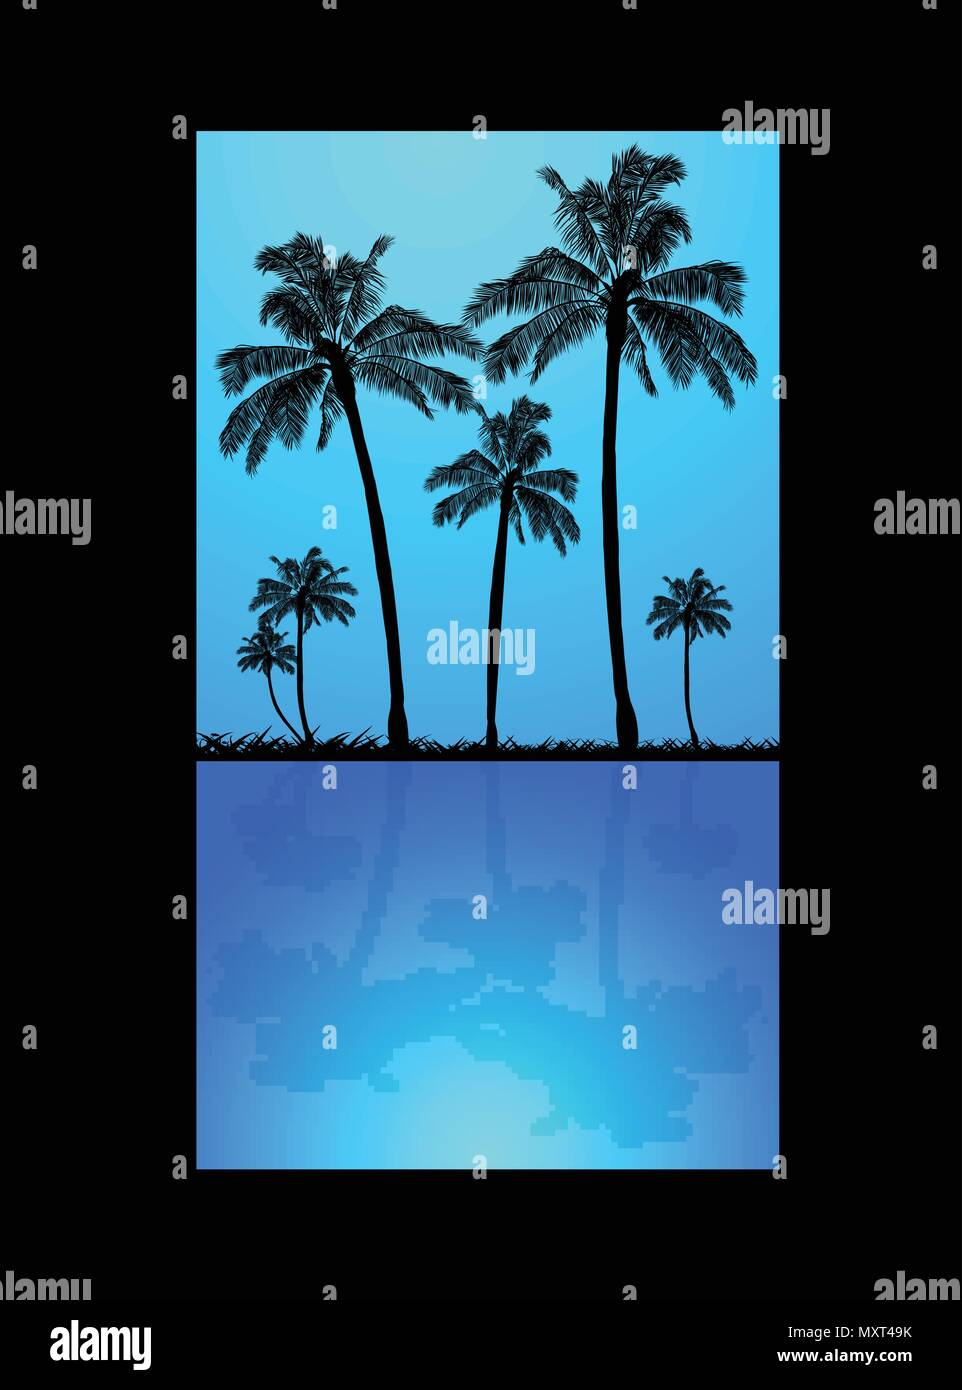 Palm Trees Silhouette and Grass Over Blue Sky and Reflection in Dark Blue Water Over Black Background - Stock Vector